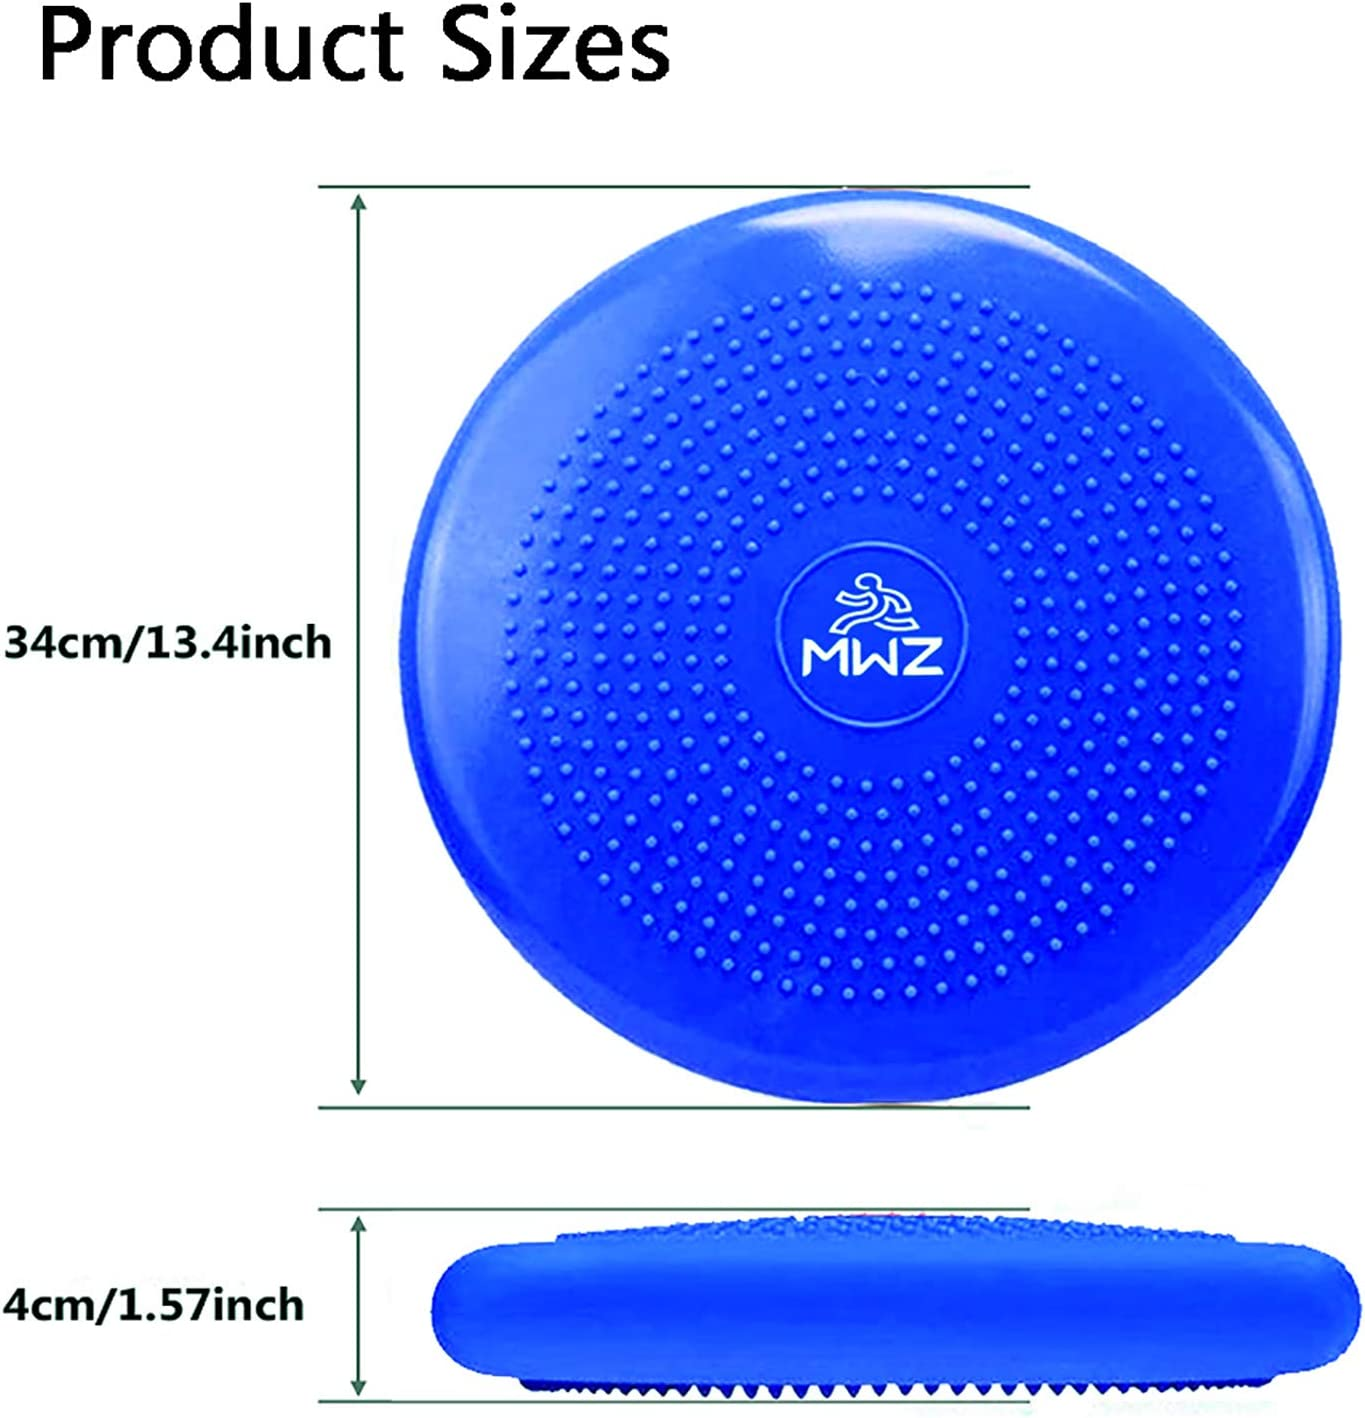 MWZ 34cm//13inch Balance Disc Fitness Inflatable Wobble Cushion Air Stability Exercise Balance Pad Core Balance Disc Home Gym Workout Equipment Kids Wiggle Seat